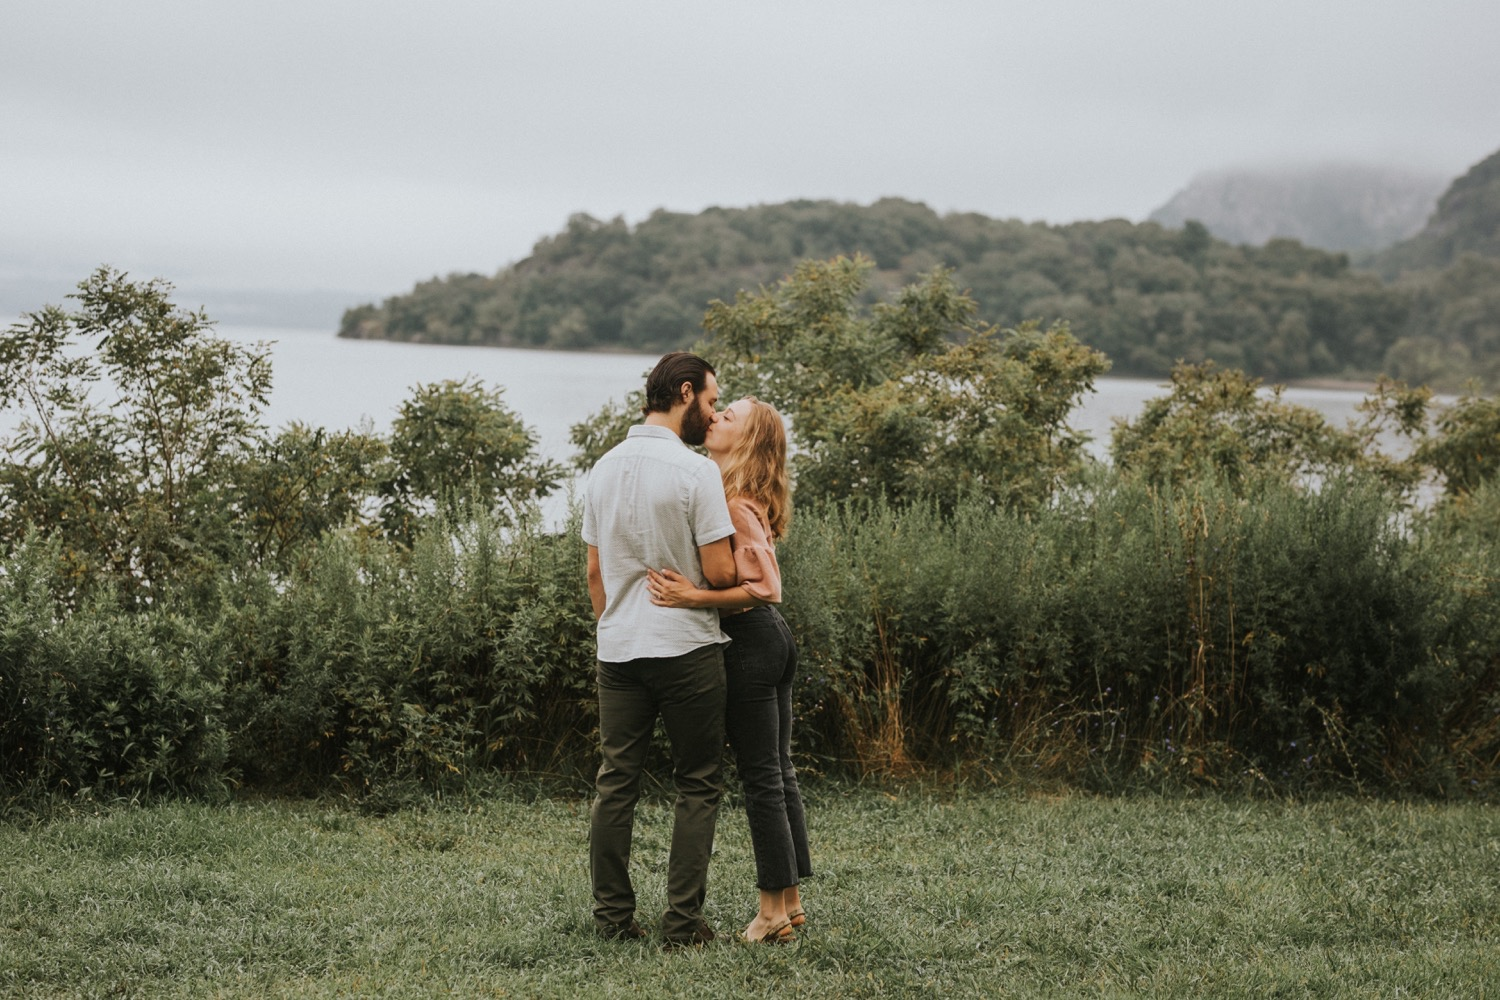 Hudson Valley Wedding Photographer, Cold Spring, Cold Spring Engagement Session, New York Engagement Session, Sunrise Engagement Session, Hudson River, Destination Wedding Photographer